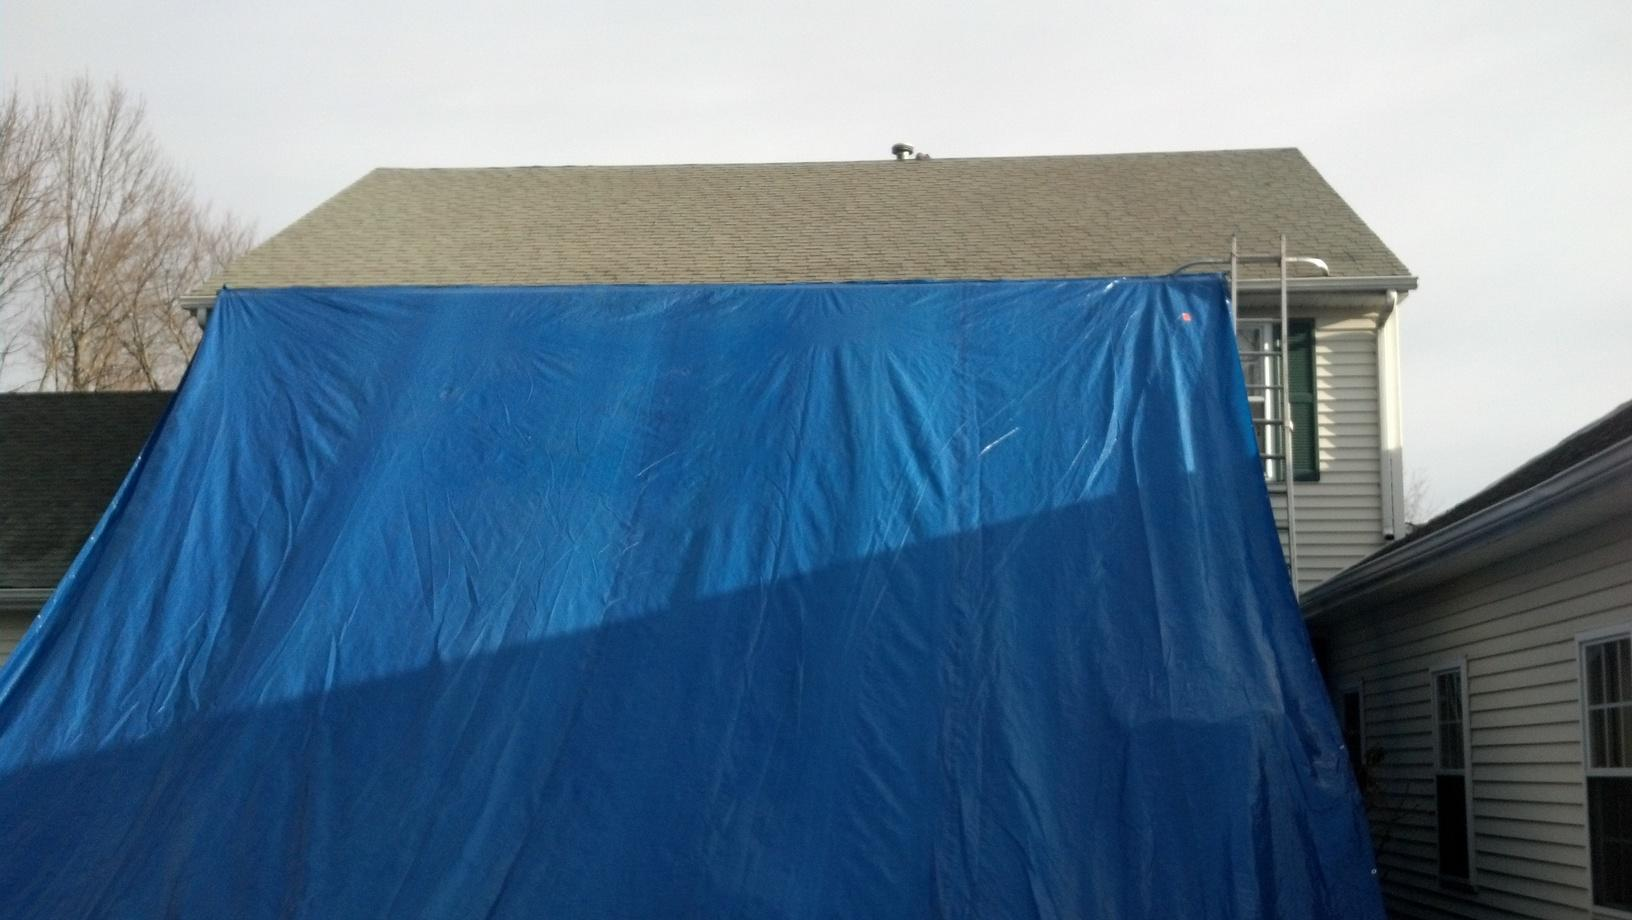 Tarping a Roof in Monroe, CT